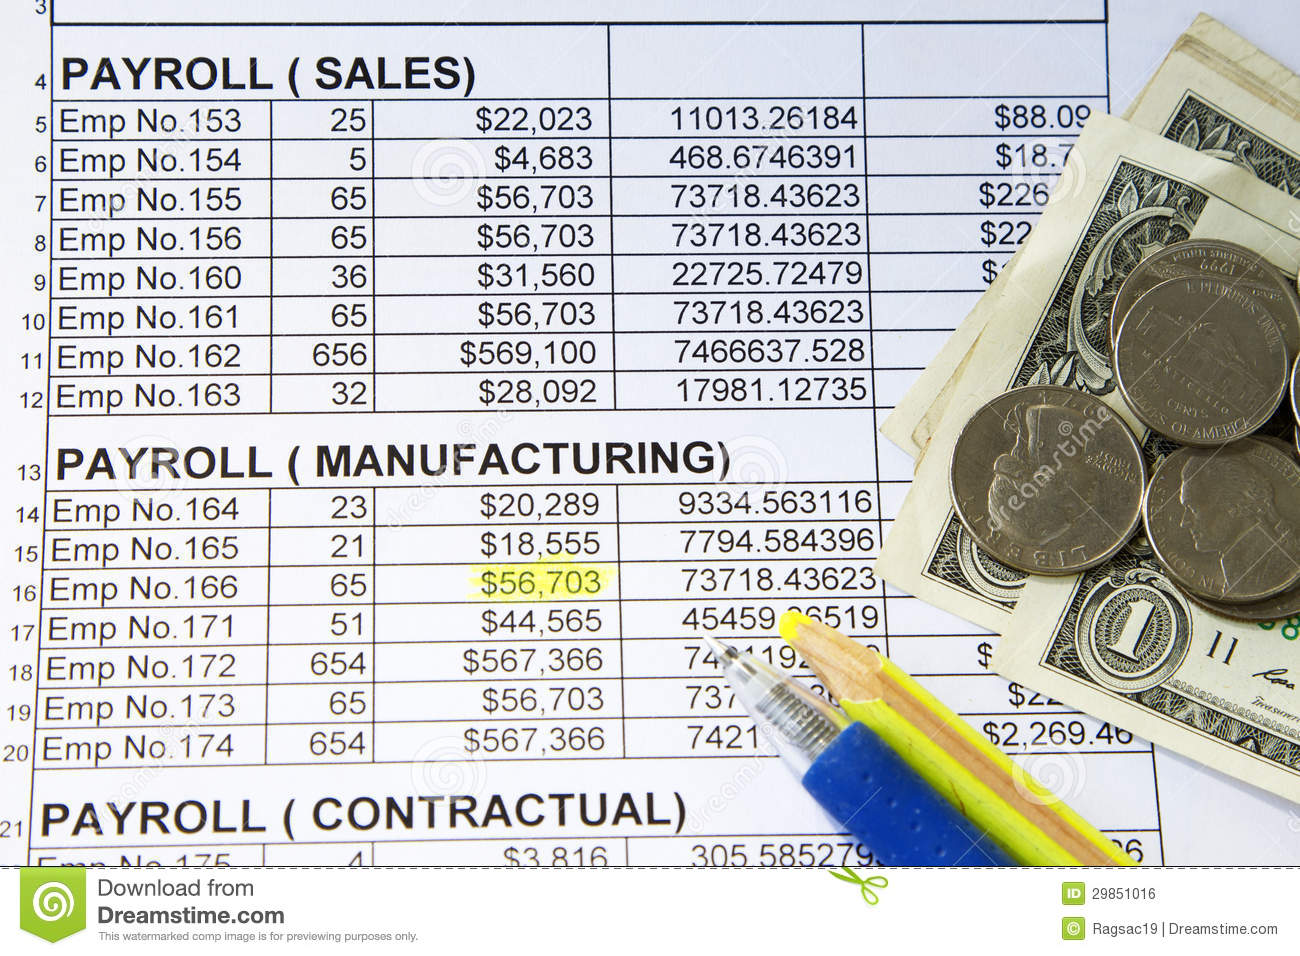 Payroll Spreadsheet Royalty Free Stock Image - Image: 29851016